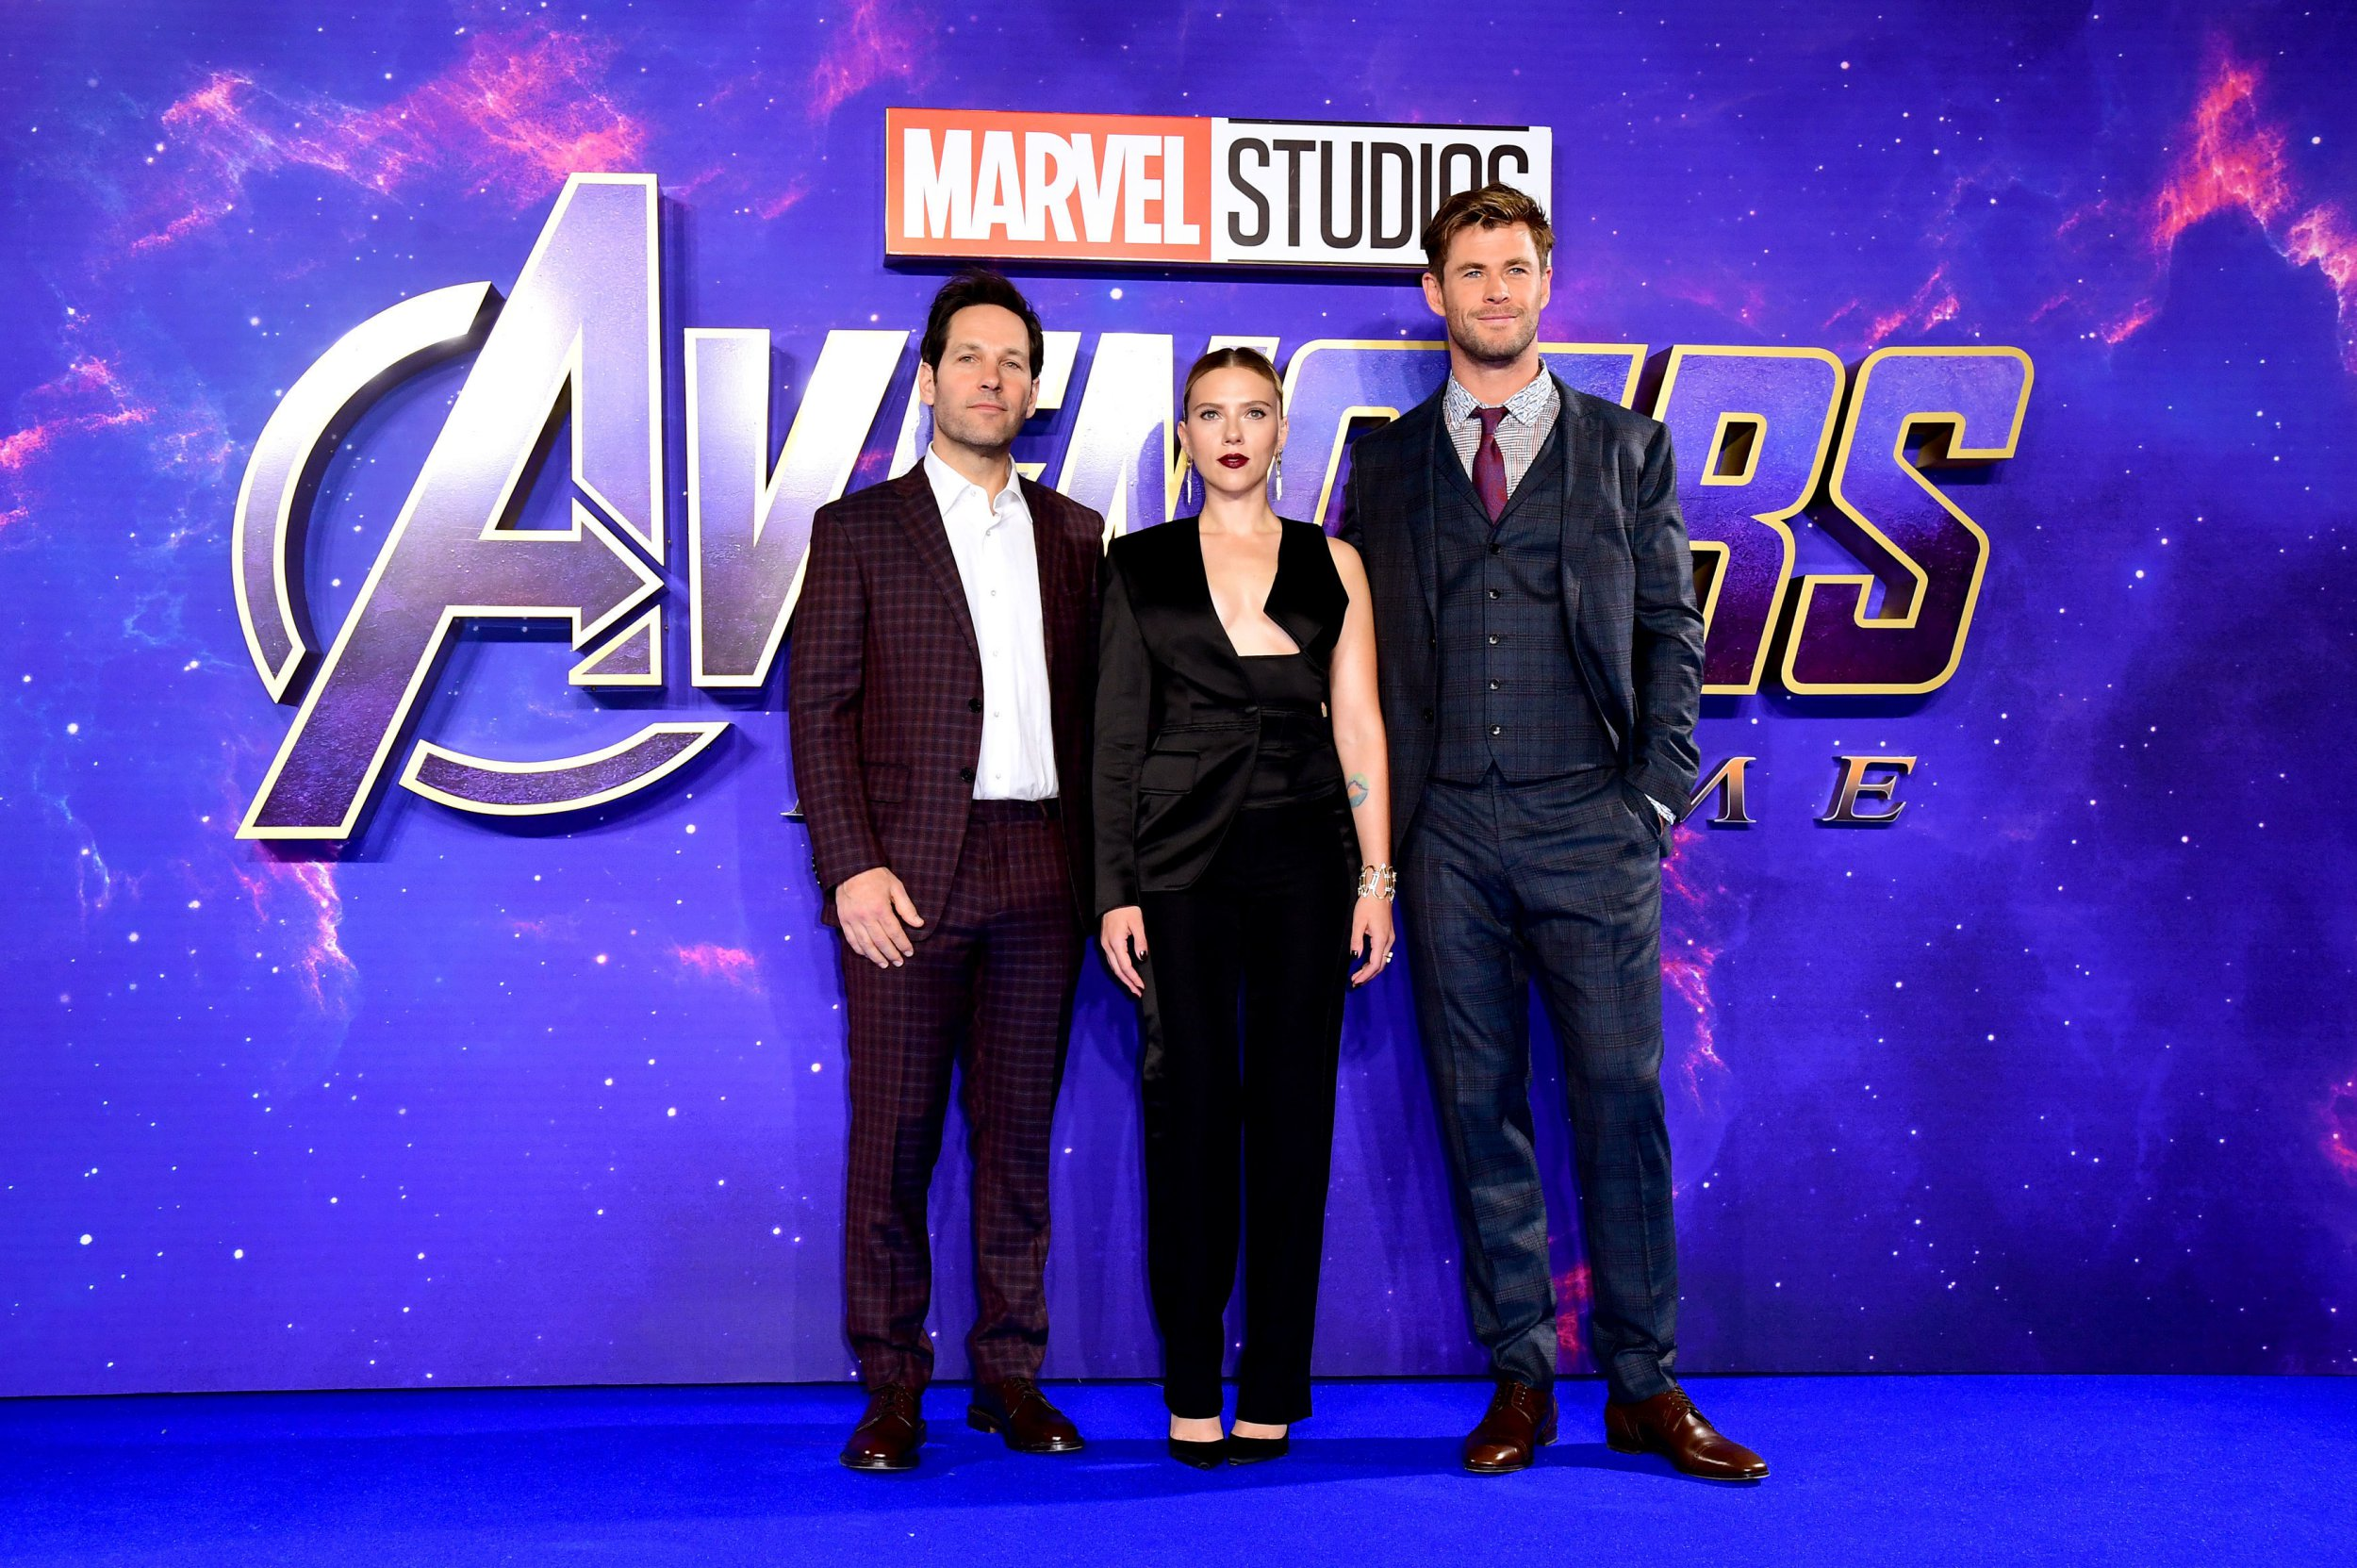 When is the Avengers: Endgame UK premiere?